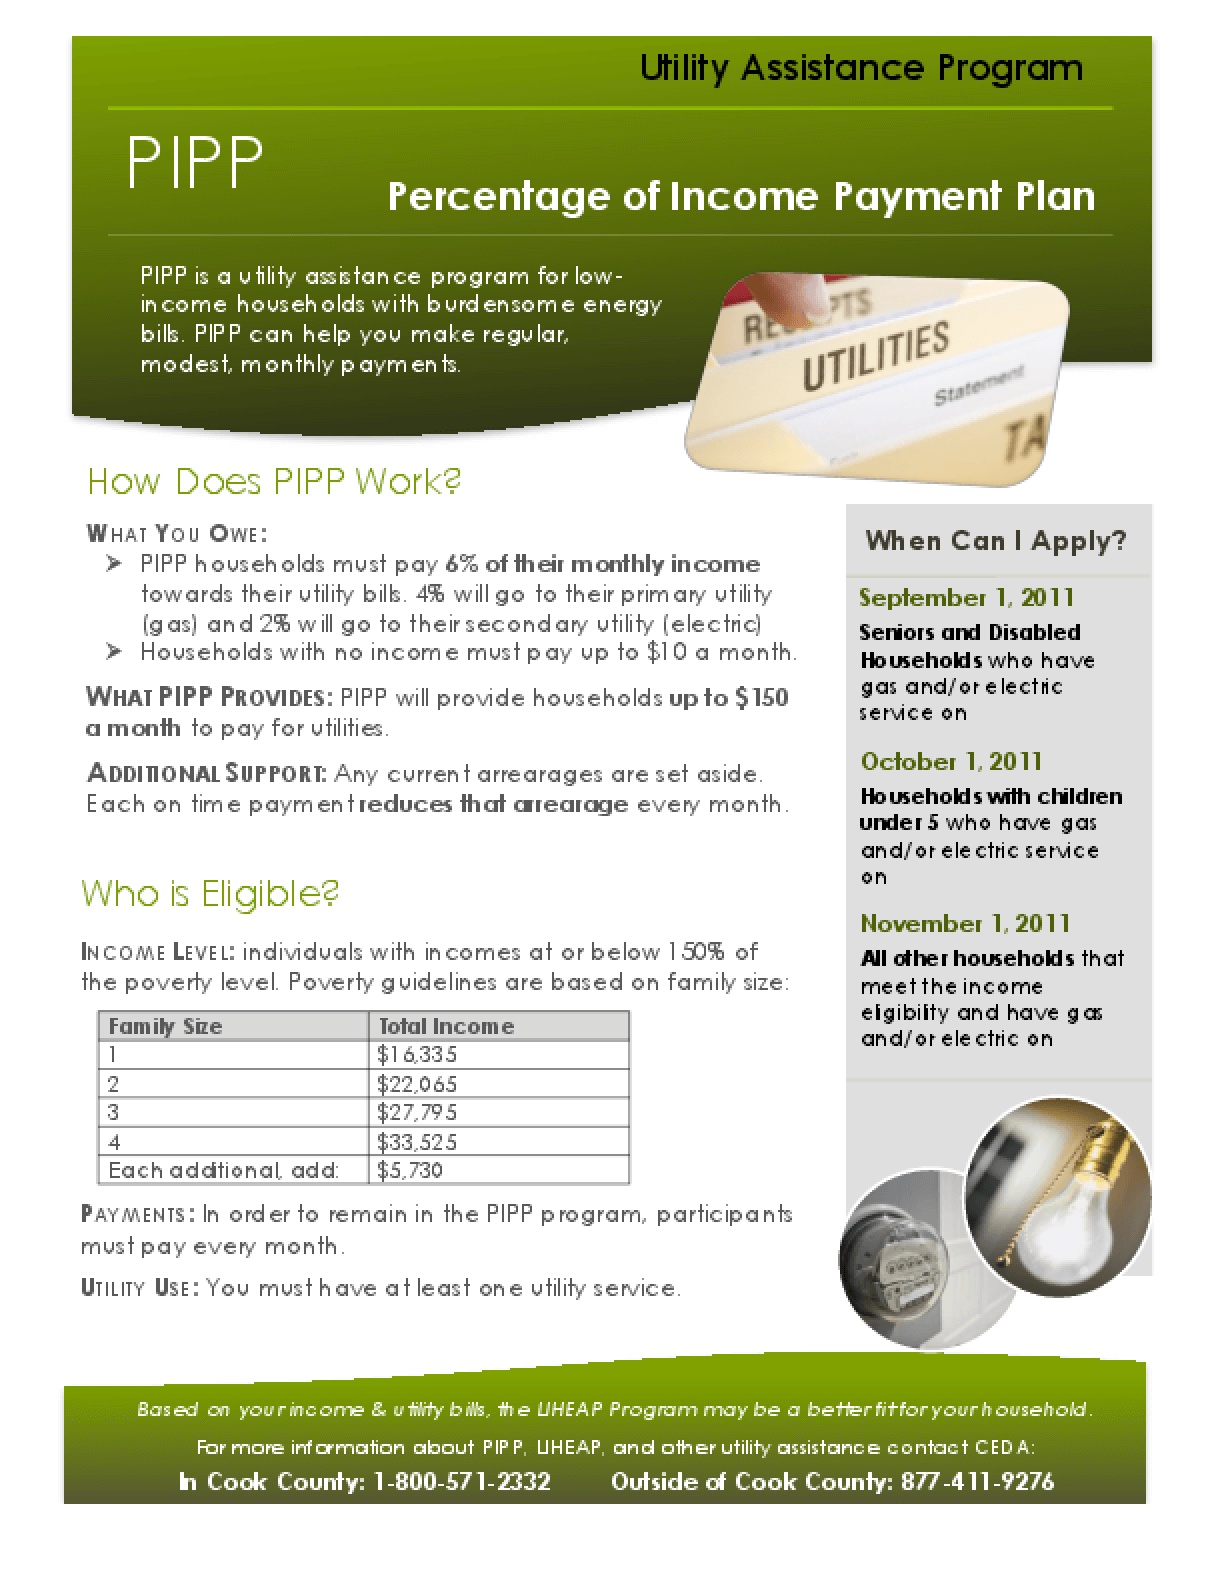 PIPP - Percentage of Income Payment Plan